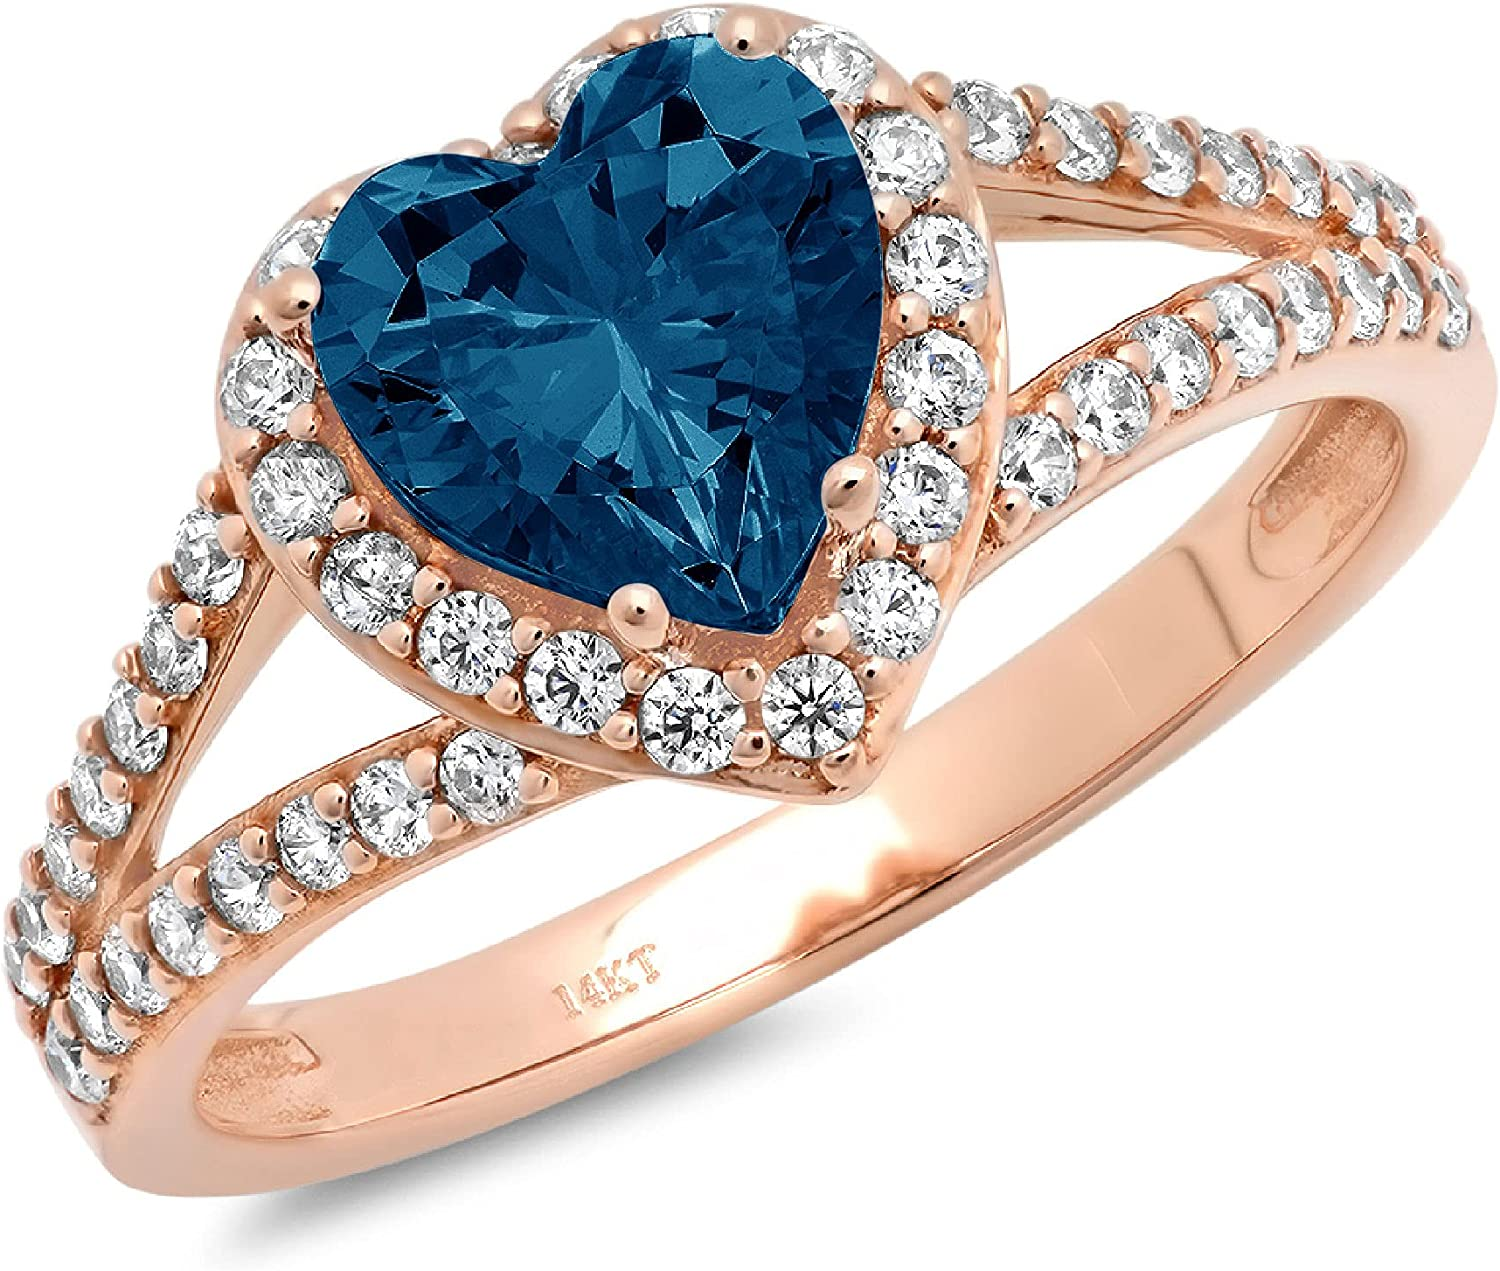 1.75 ct Heart Cut Solitaire Accent Halo split shank Genuine Flawless Natural London Blue Topaz Gemstone Engagement Promise Statement Anniversary Bridal Wedding Ring Solid 18K Rose Gold